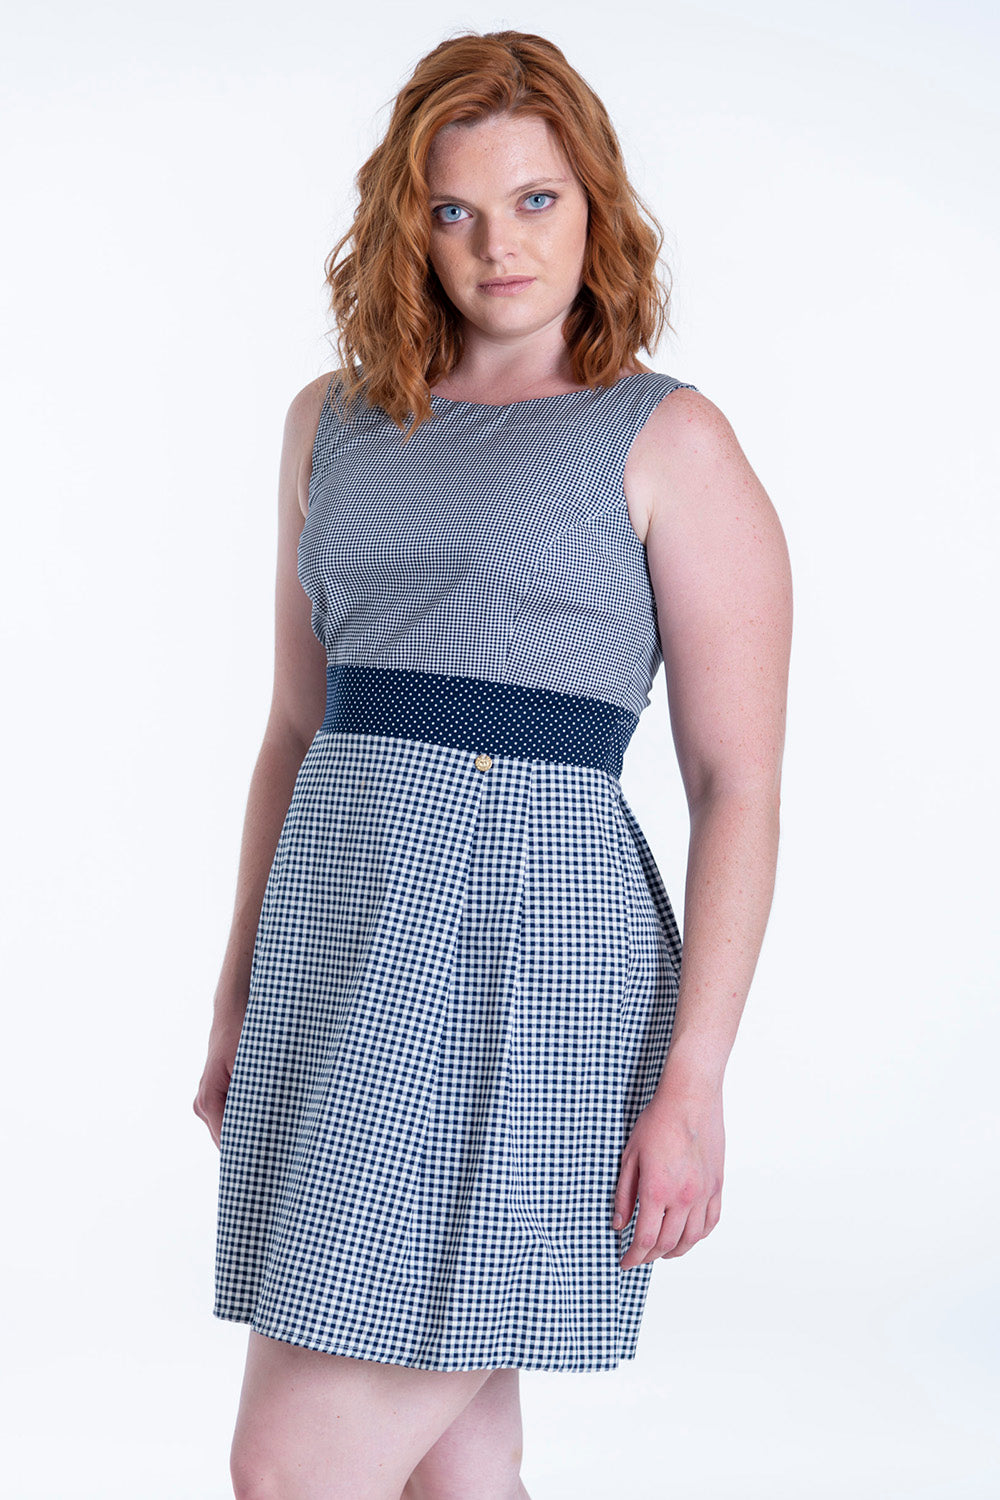 Makis Tselios cute dress with check contrast patterns